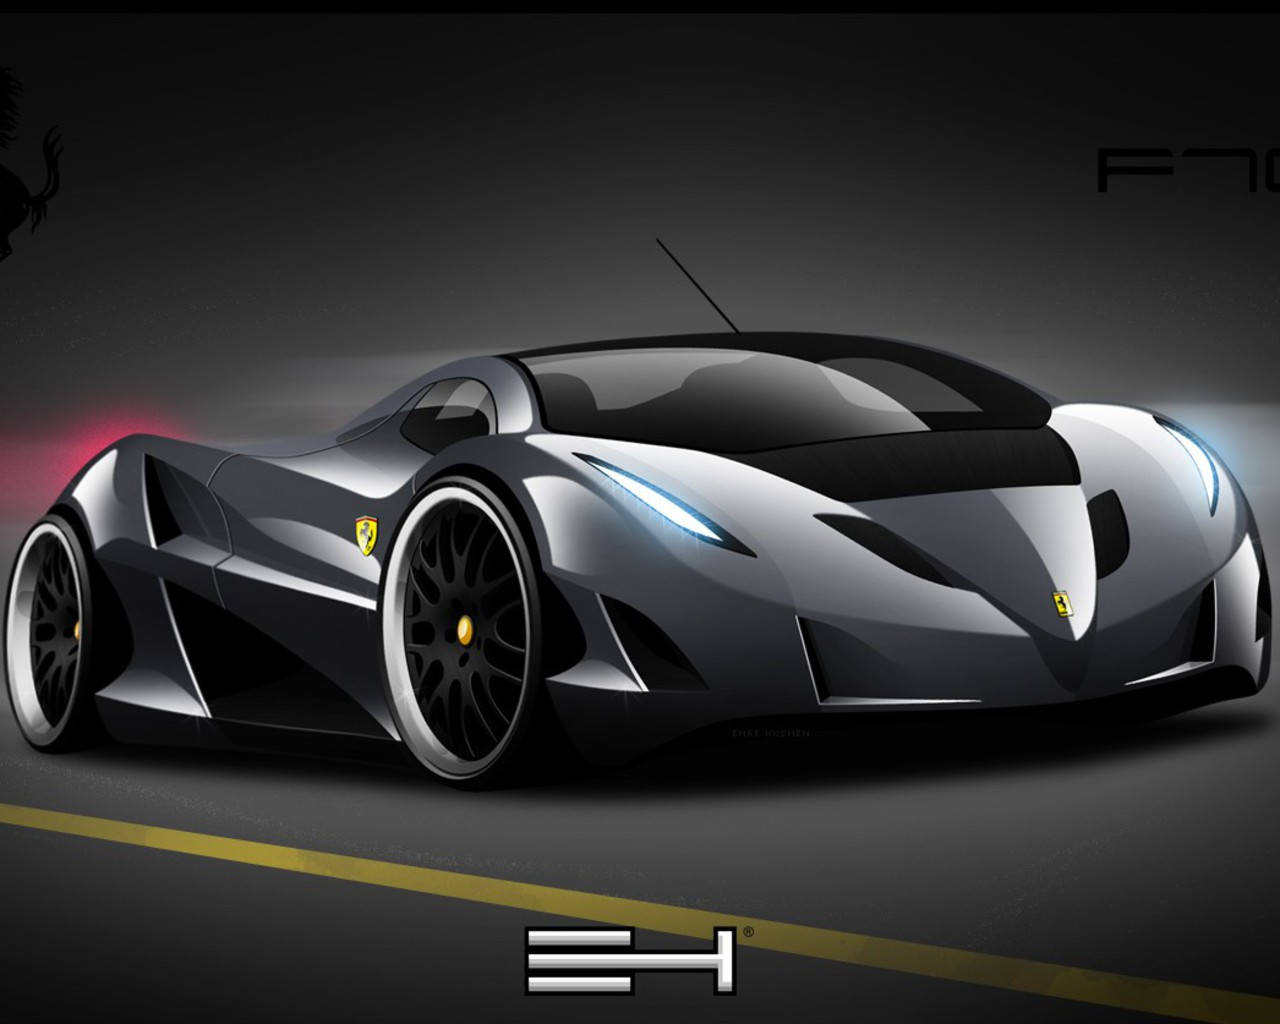 Super Cars Free Ferrari Desktop At Cardesktop 123177 Wallpaper wallpaper